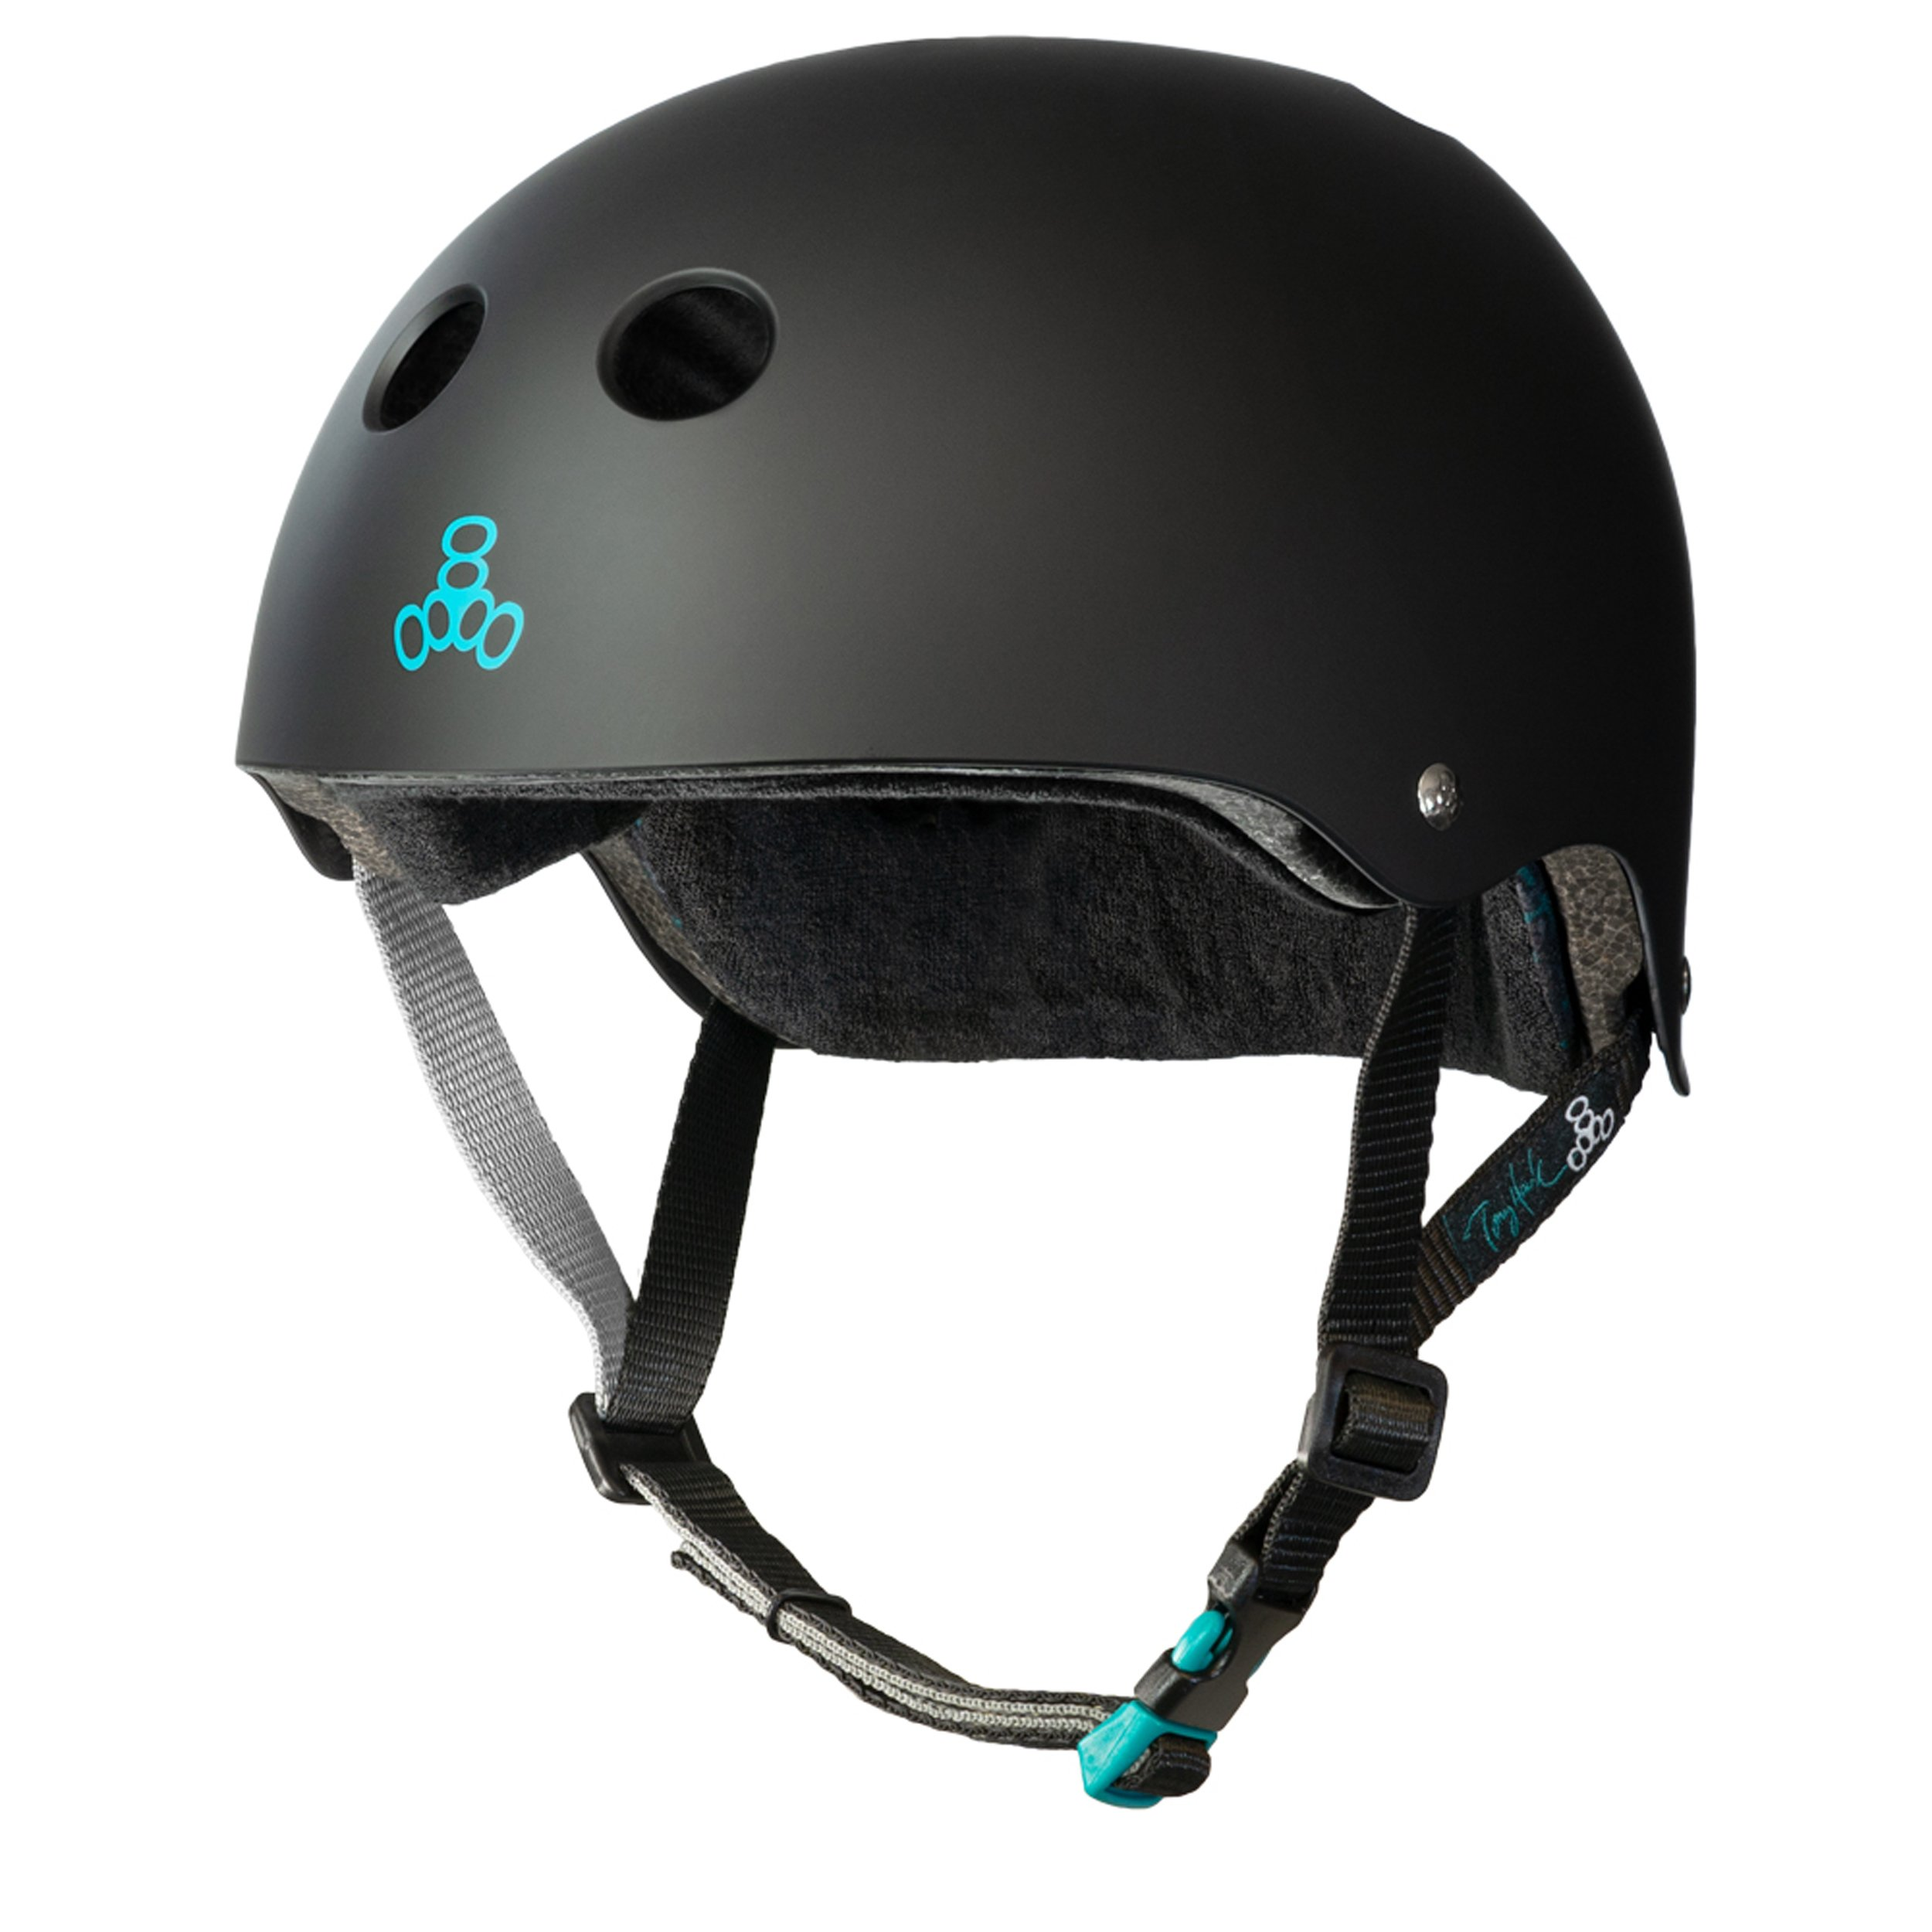 Triple 8 Tony Hawk Signature Model THE Certified Sweatsaver Helmet for Skateboarding, BMX, Roller Skating and Action Sports, S/M